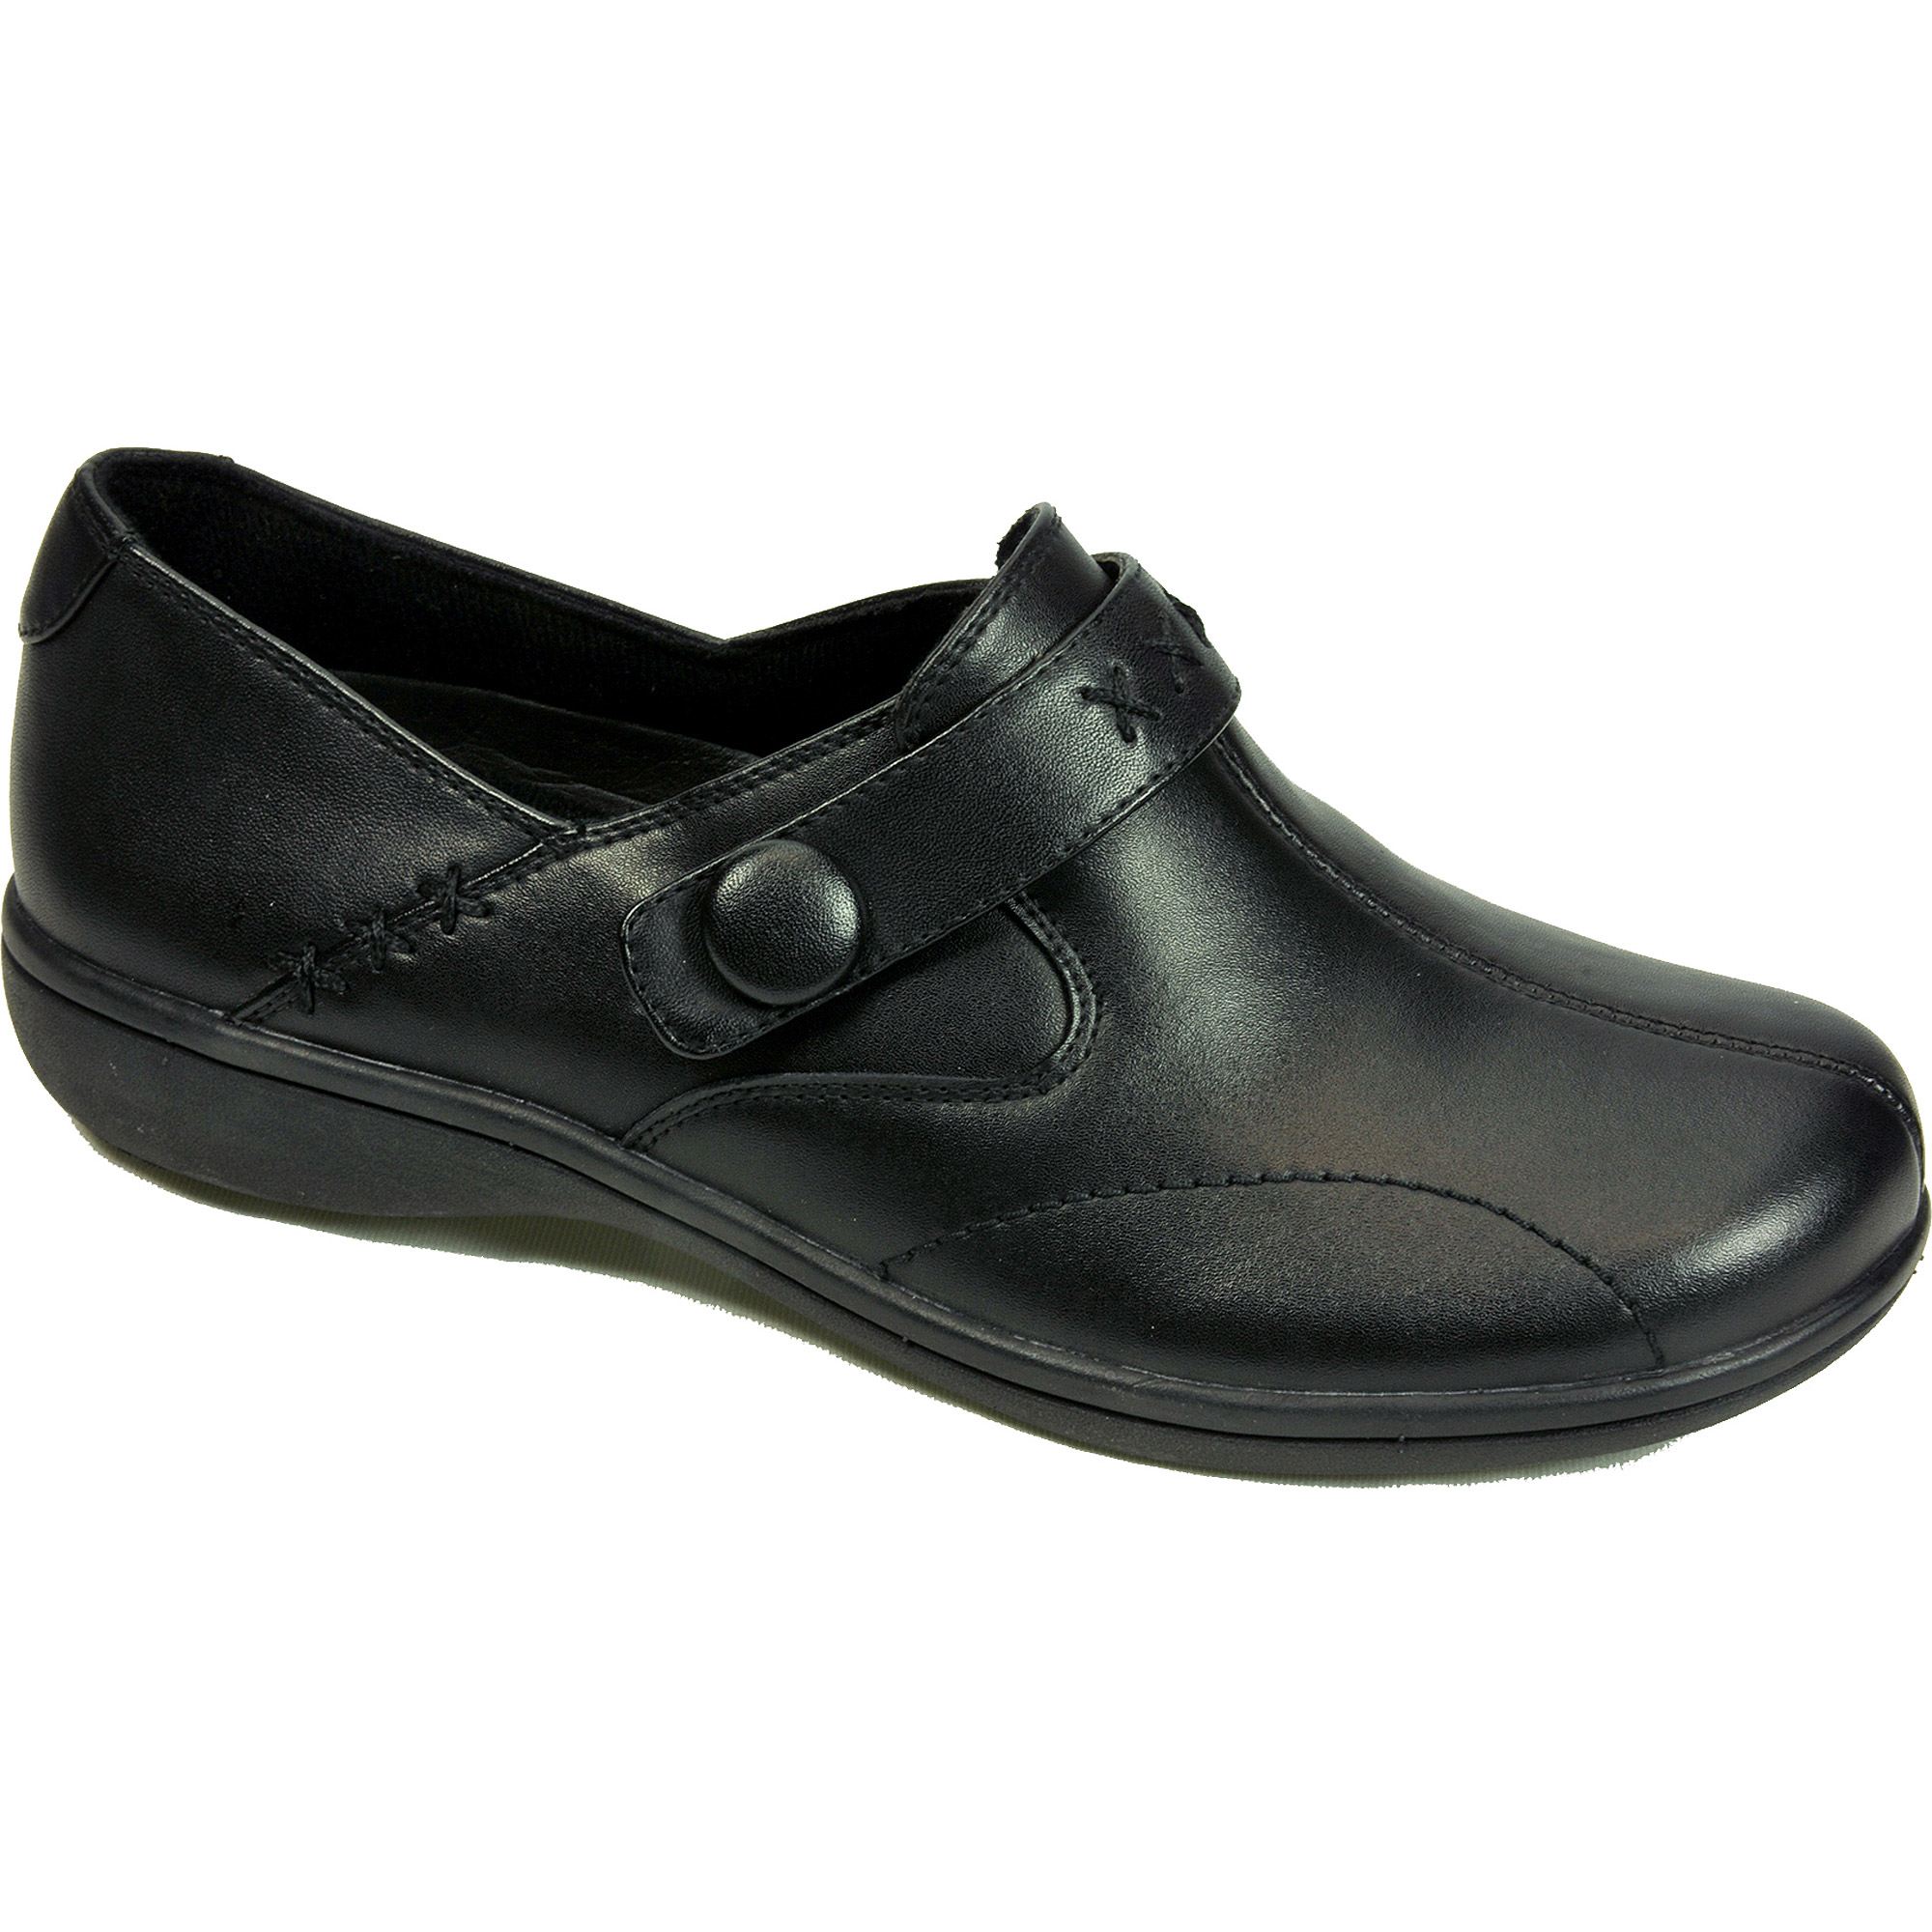 Dr Scholls. Do you need shoes for work and play? Get them from the Dr. Scholl's collection. It has easily found its niche in the marketplace by appealing to .